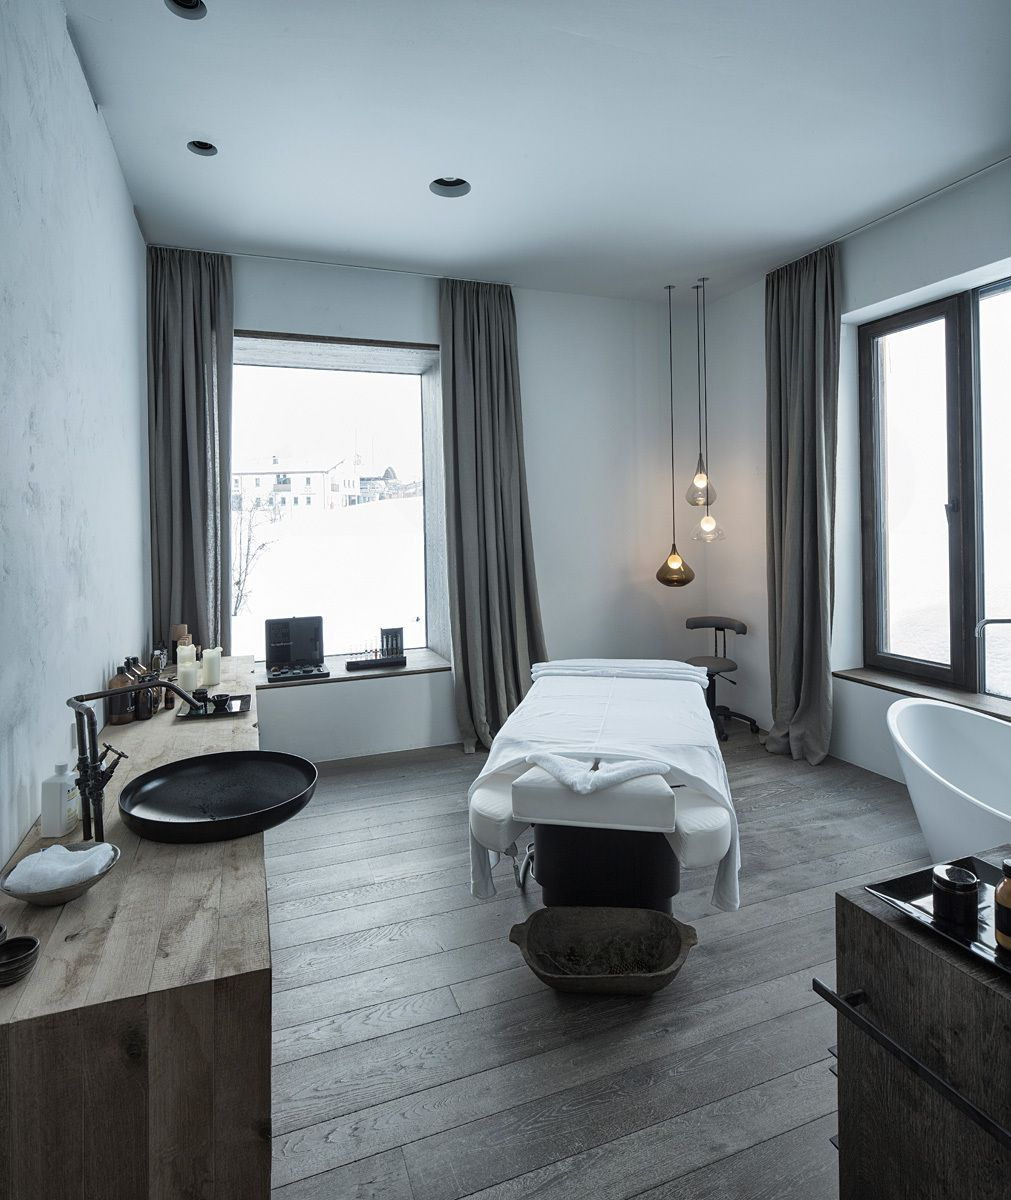 Salon De Massage Angers Showcase Hotel Wiesergut By Gogl Architekten Gabinetes Masajes